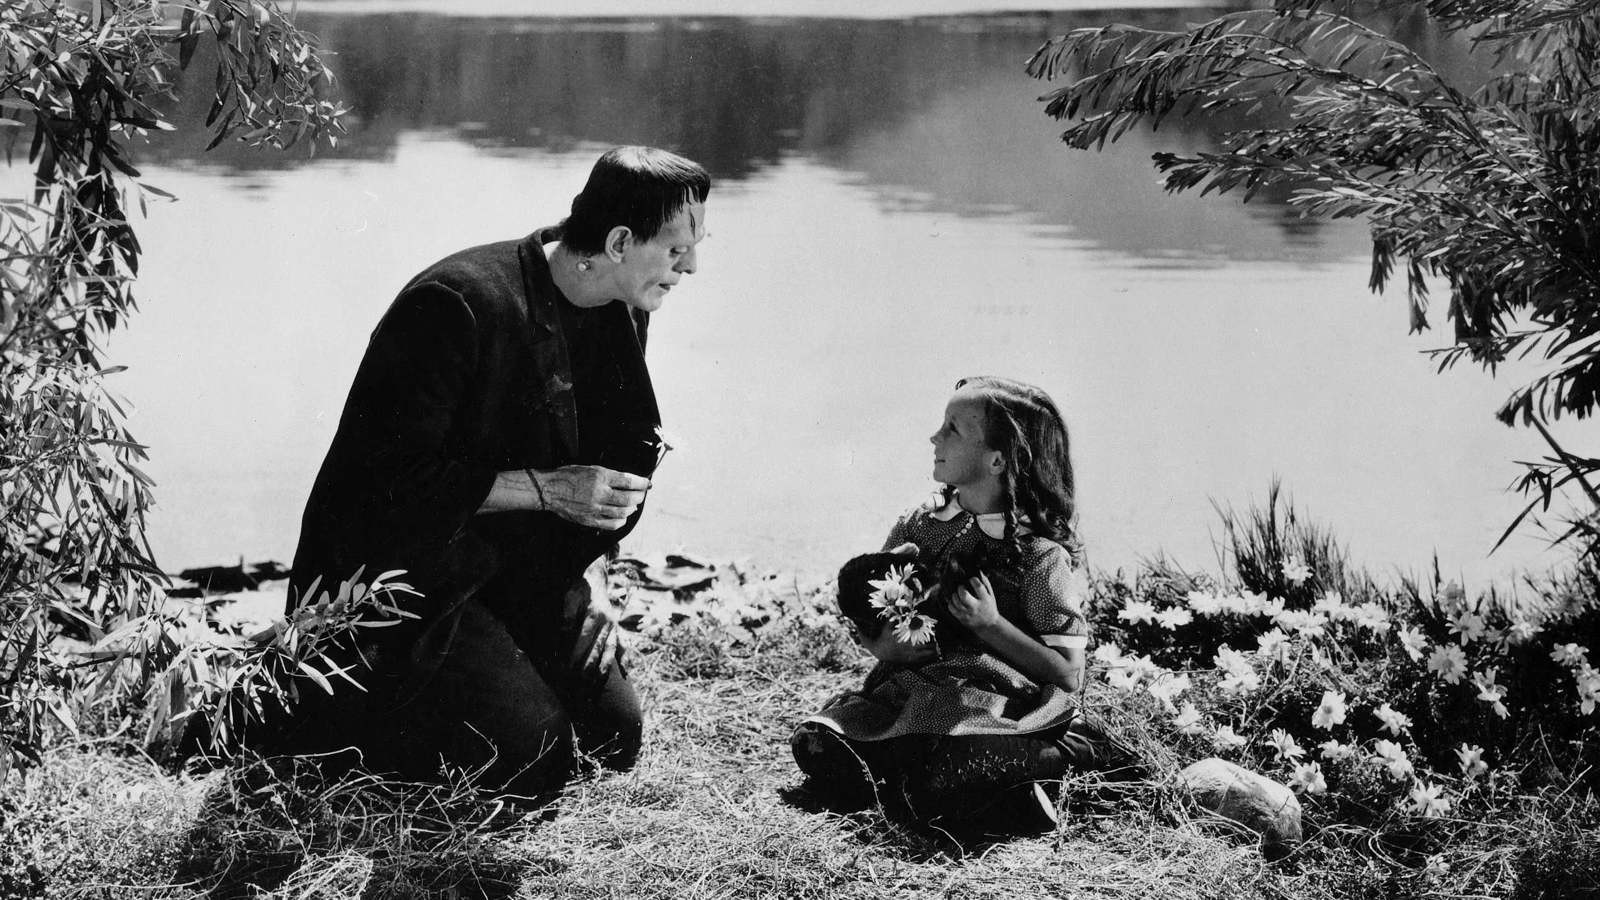 Boris Karloff's Monster meets the little girl picking flowers on the riverbank in Frankenstein (1931)